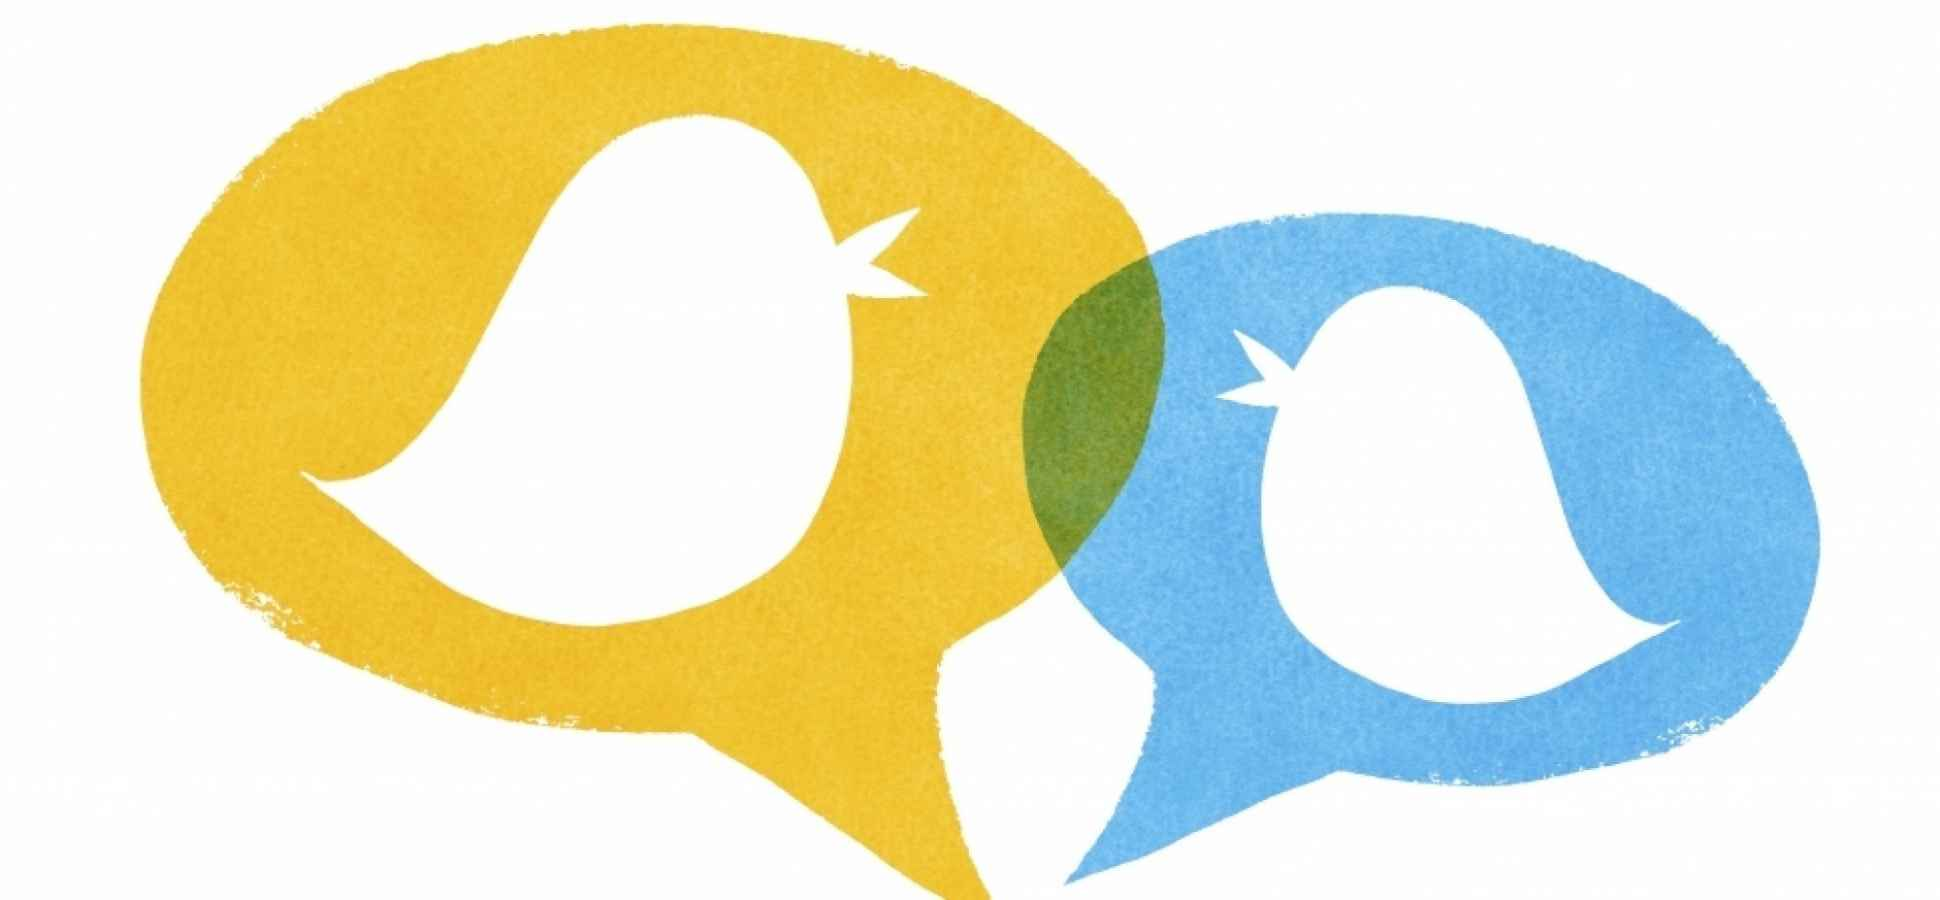 20 Powerful Ways to Use Twitter to Grow Your Business